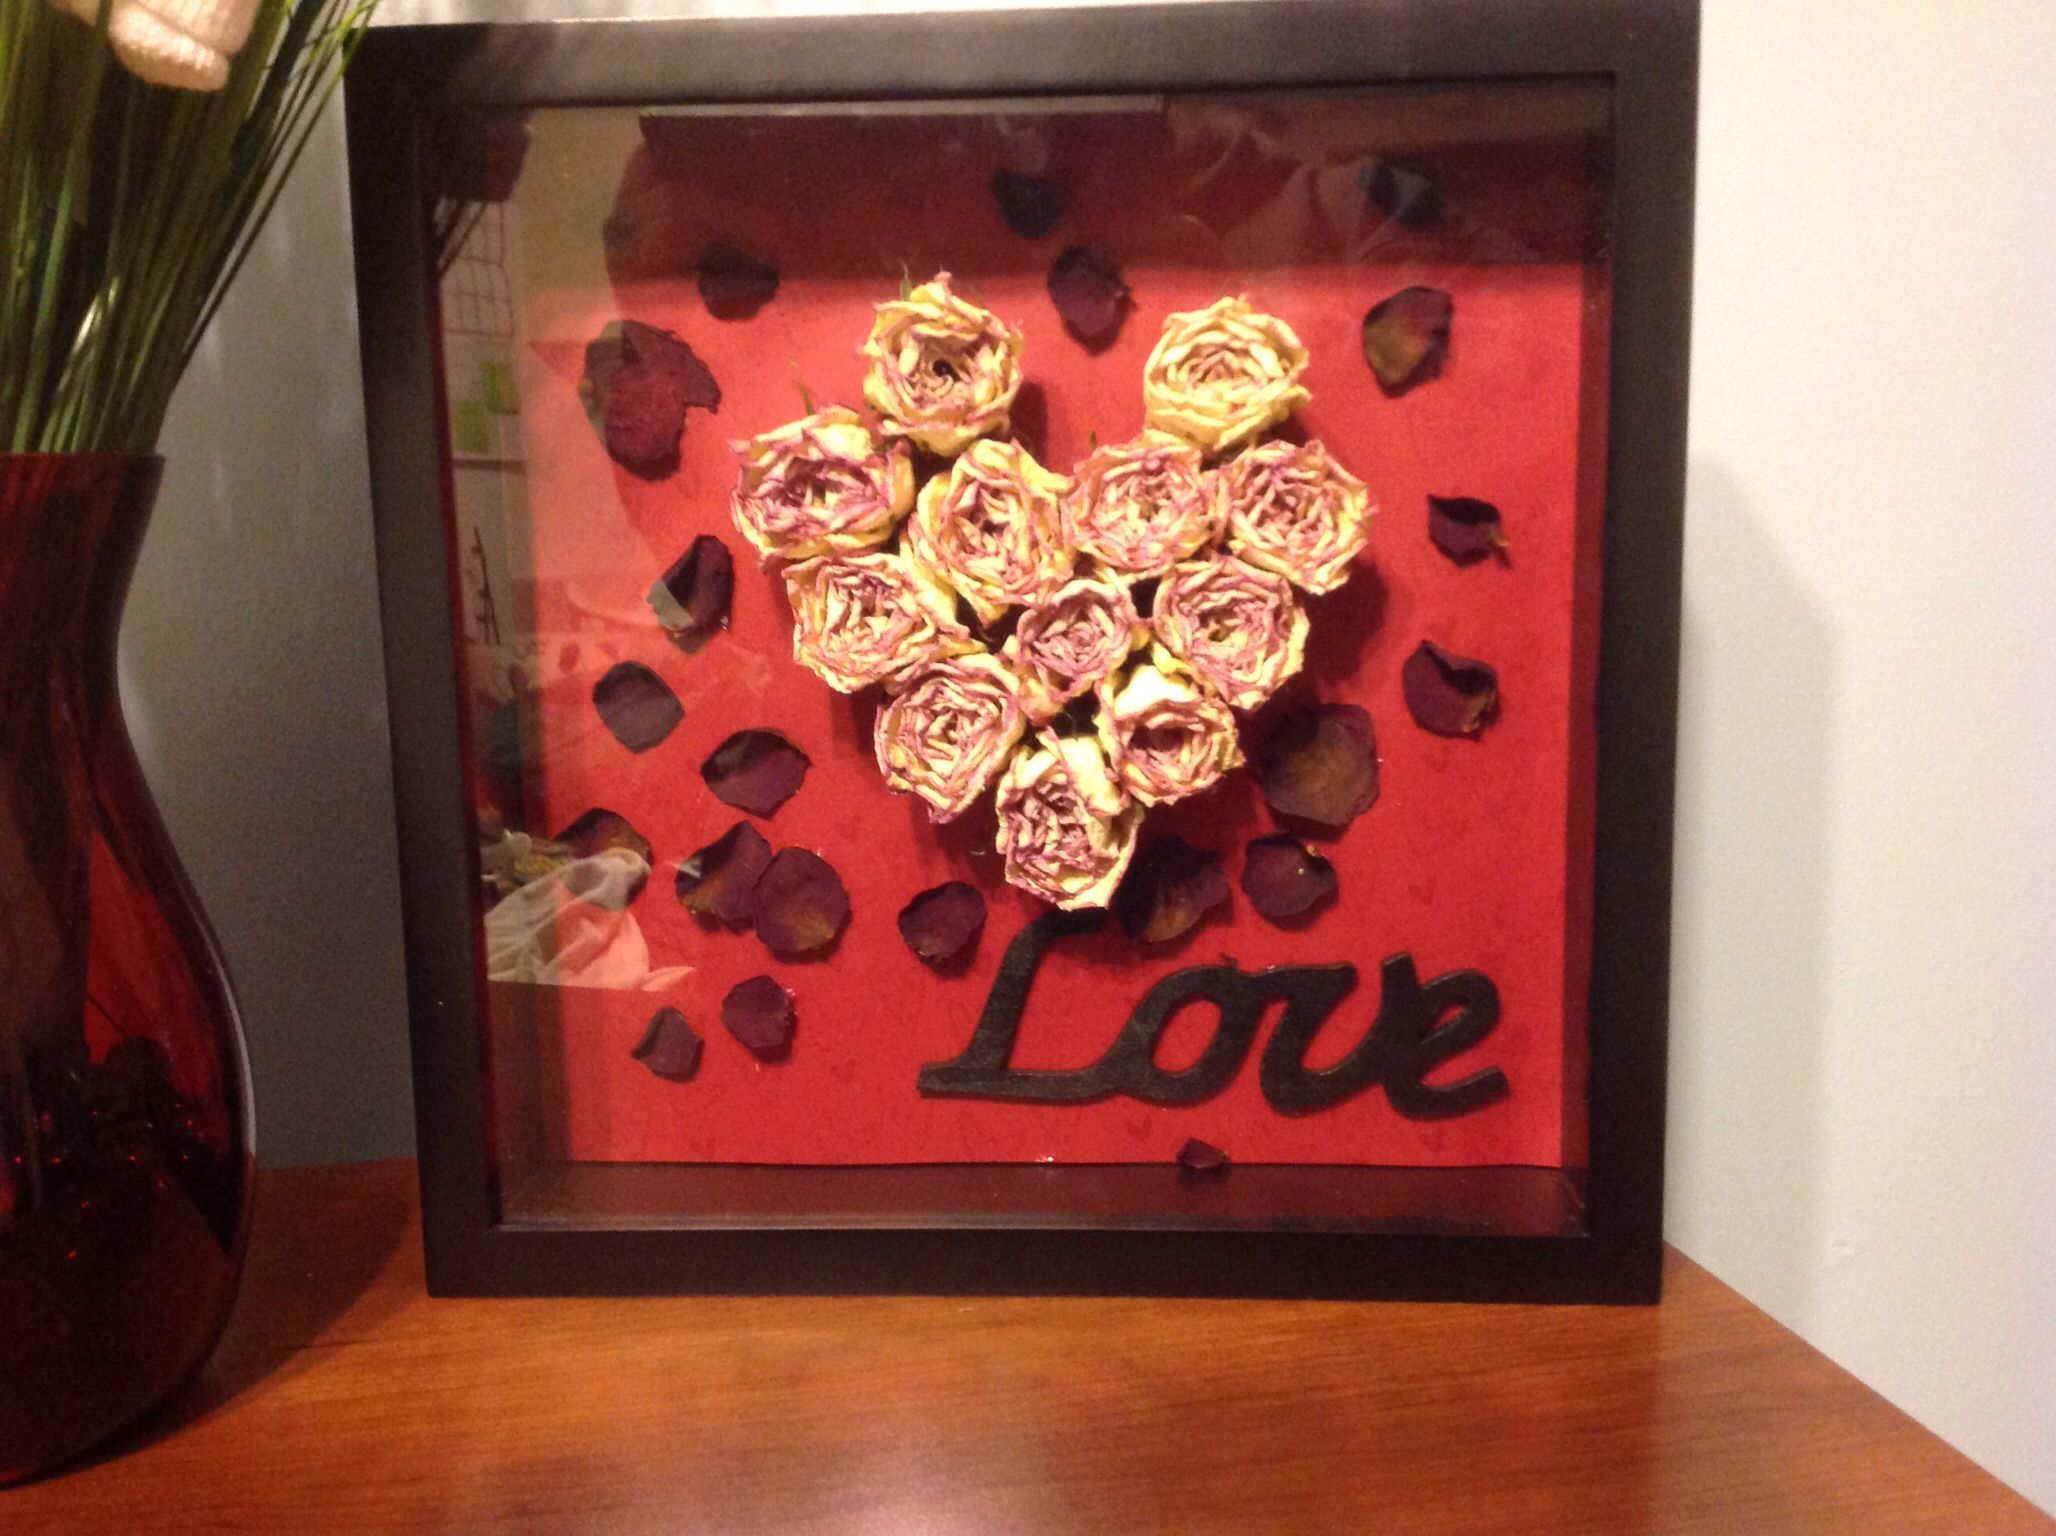 Valentines roses saved and put into a shadow box to save and display.